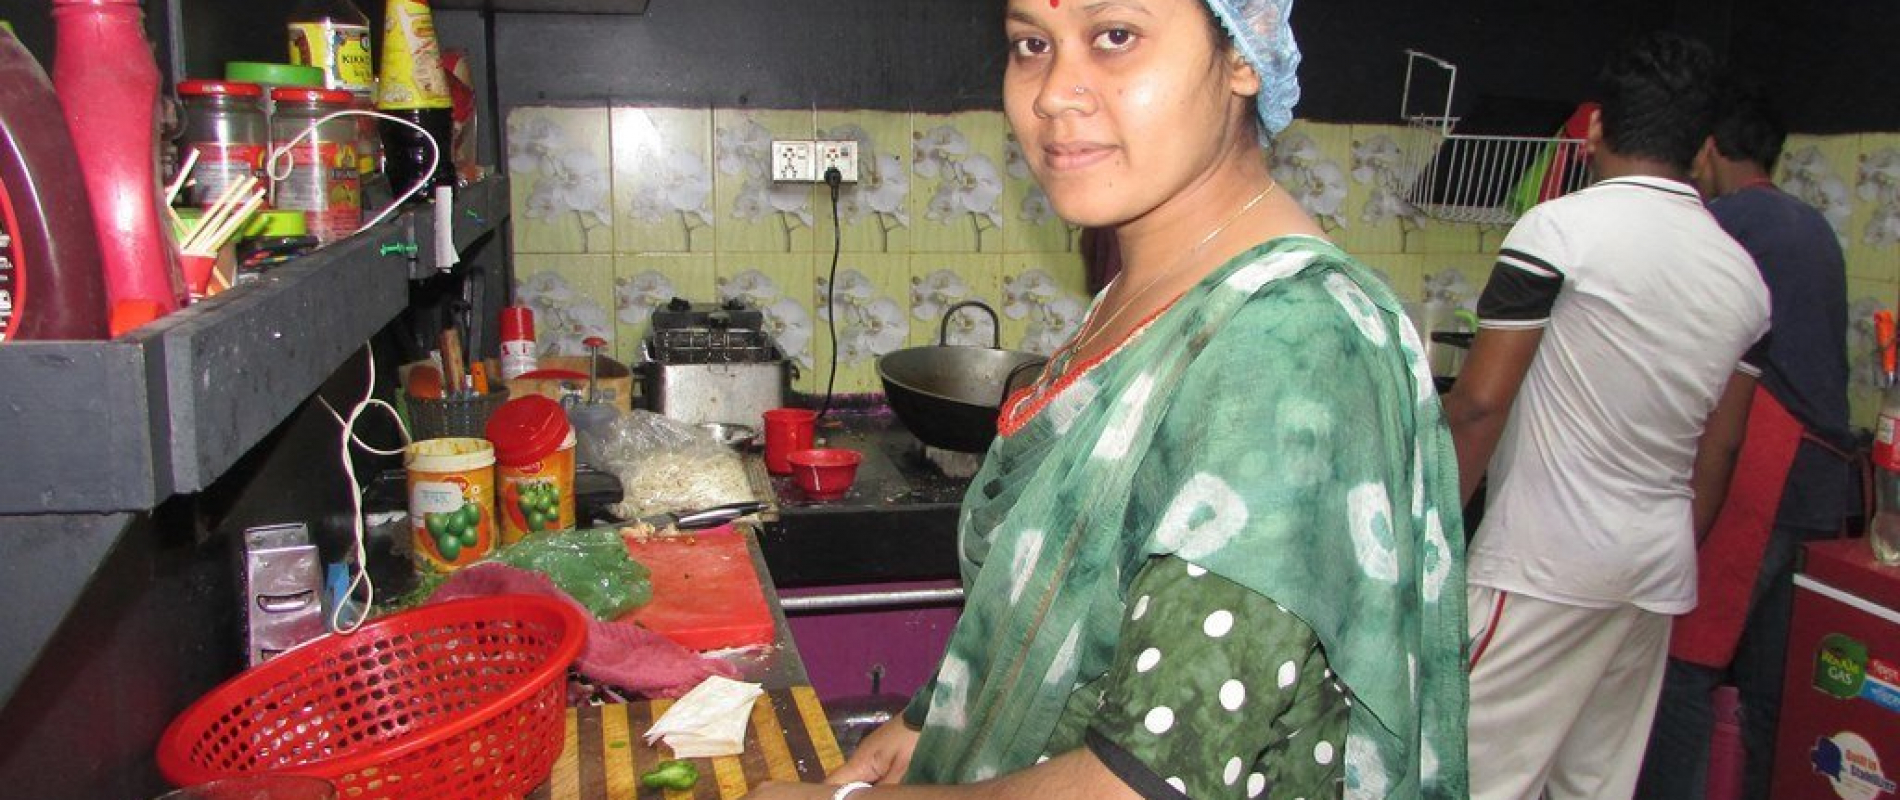 Testimony 03 lipika das is cooking for customers